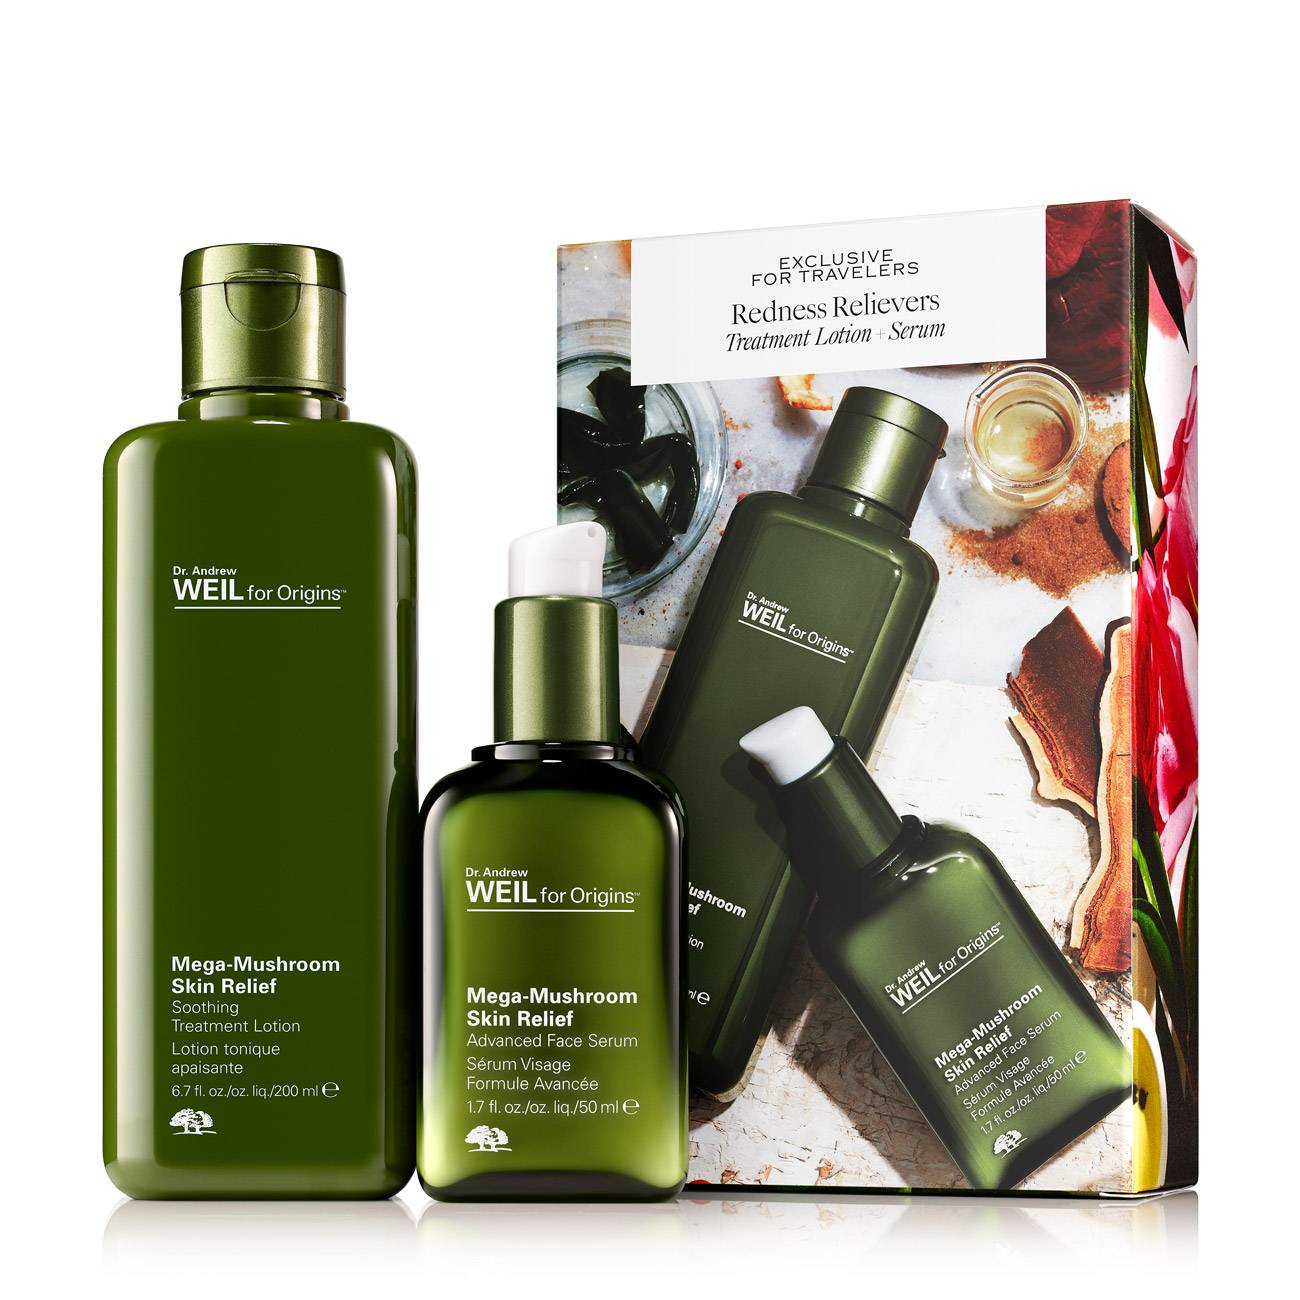 Dr. Andrew Weil Redness Relievers Set 250 Ml